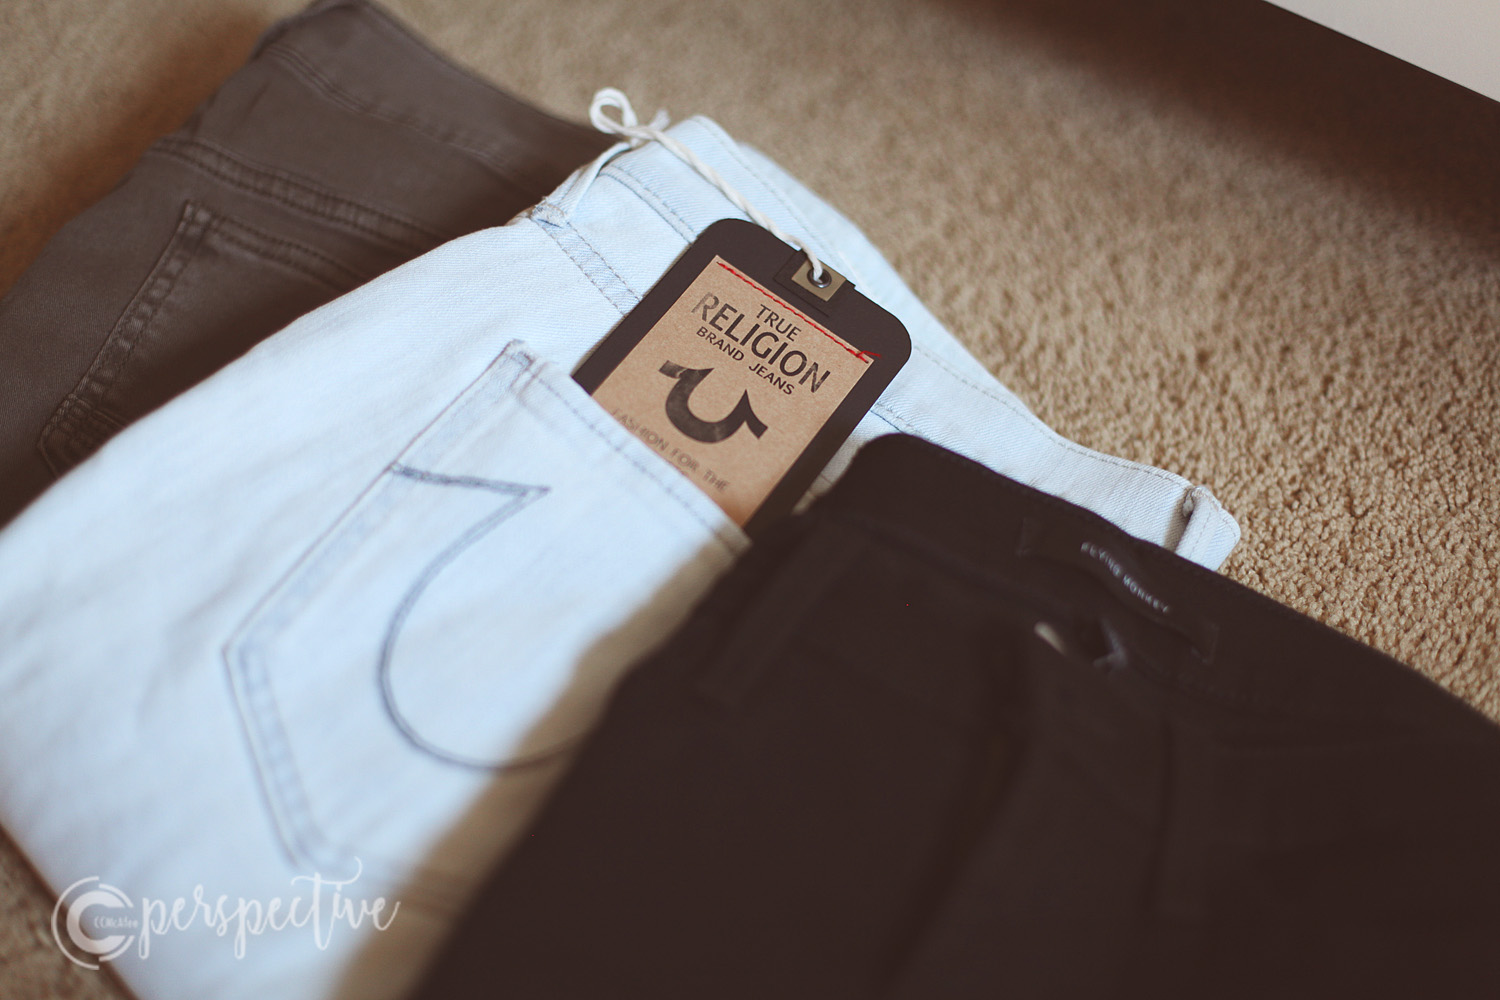 My first pair of True Religion jeans, and Flying Monkey jeans